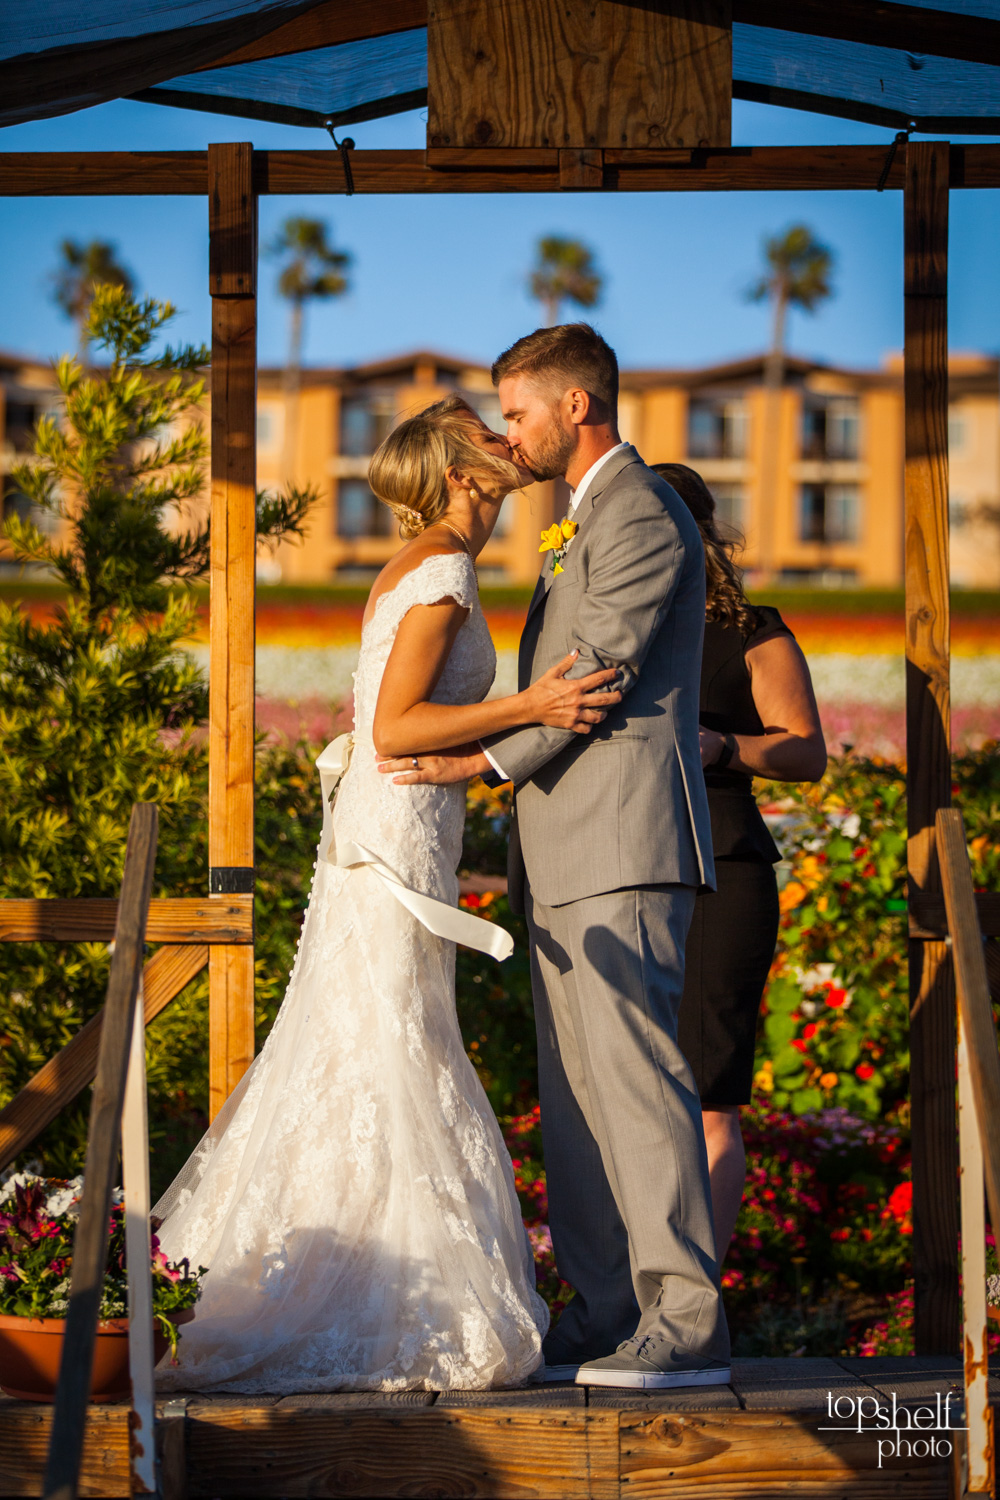 carlsbad-flower-fields-wedding-san-diego-top-shelf-photo-15.jpg